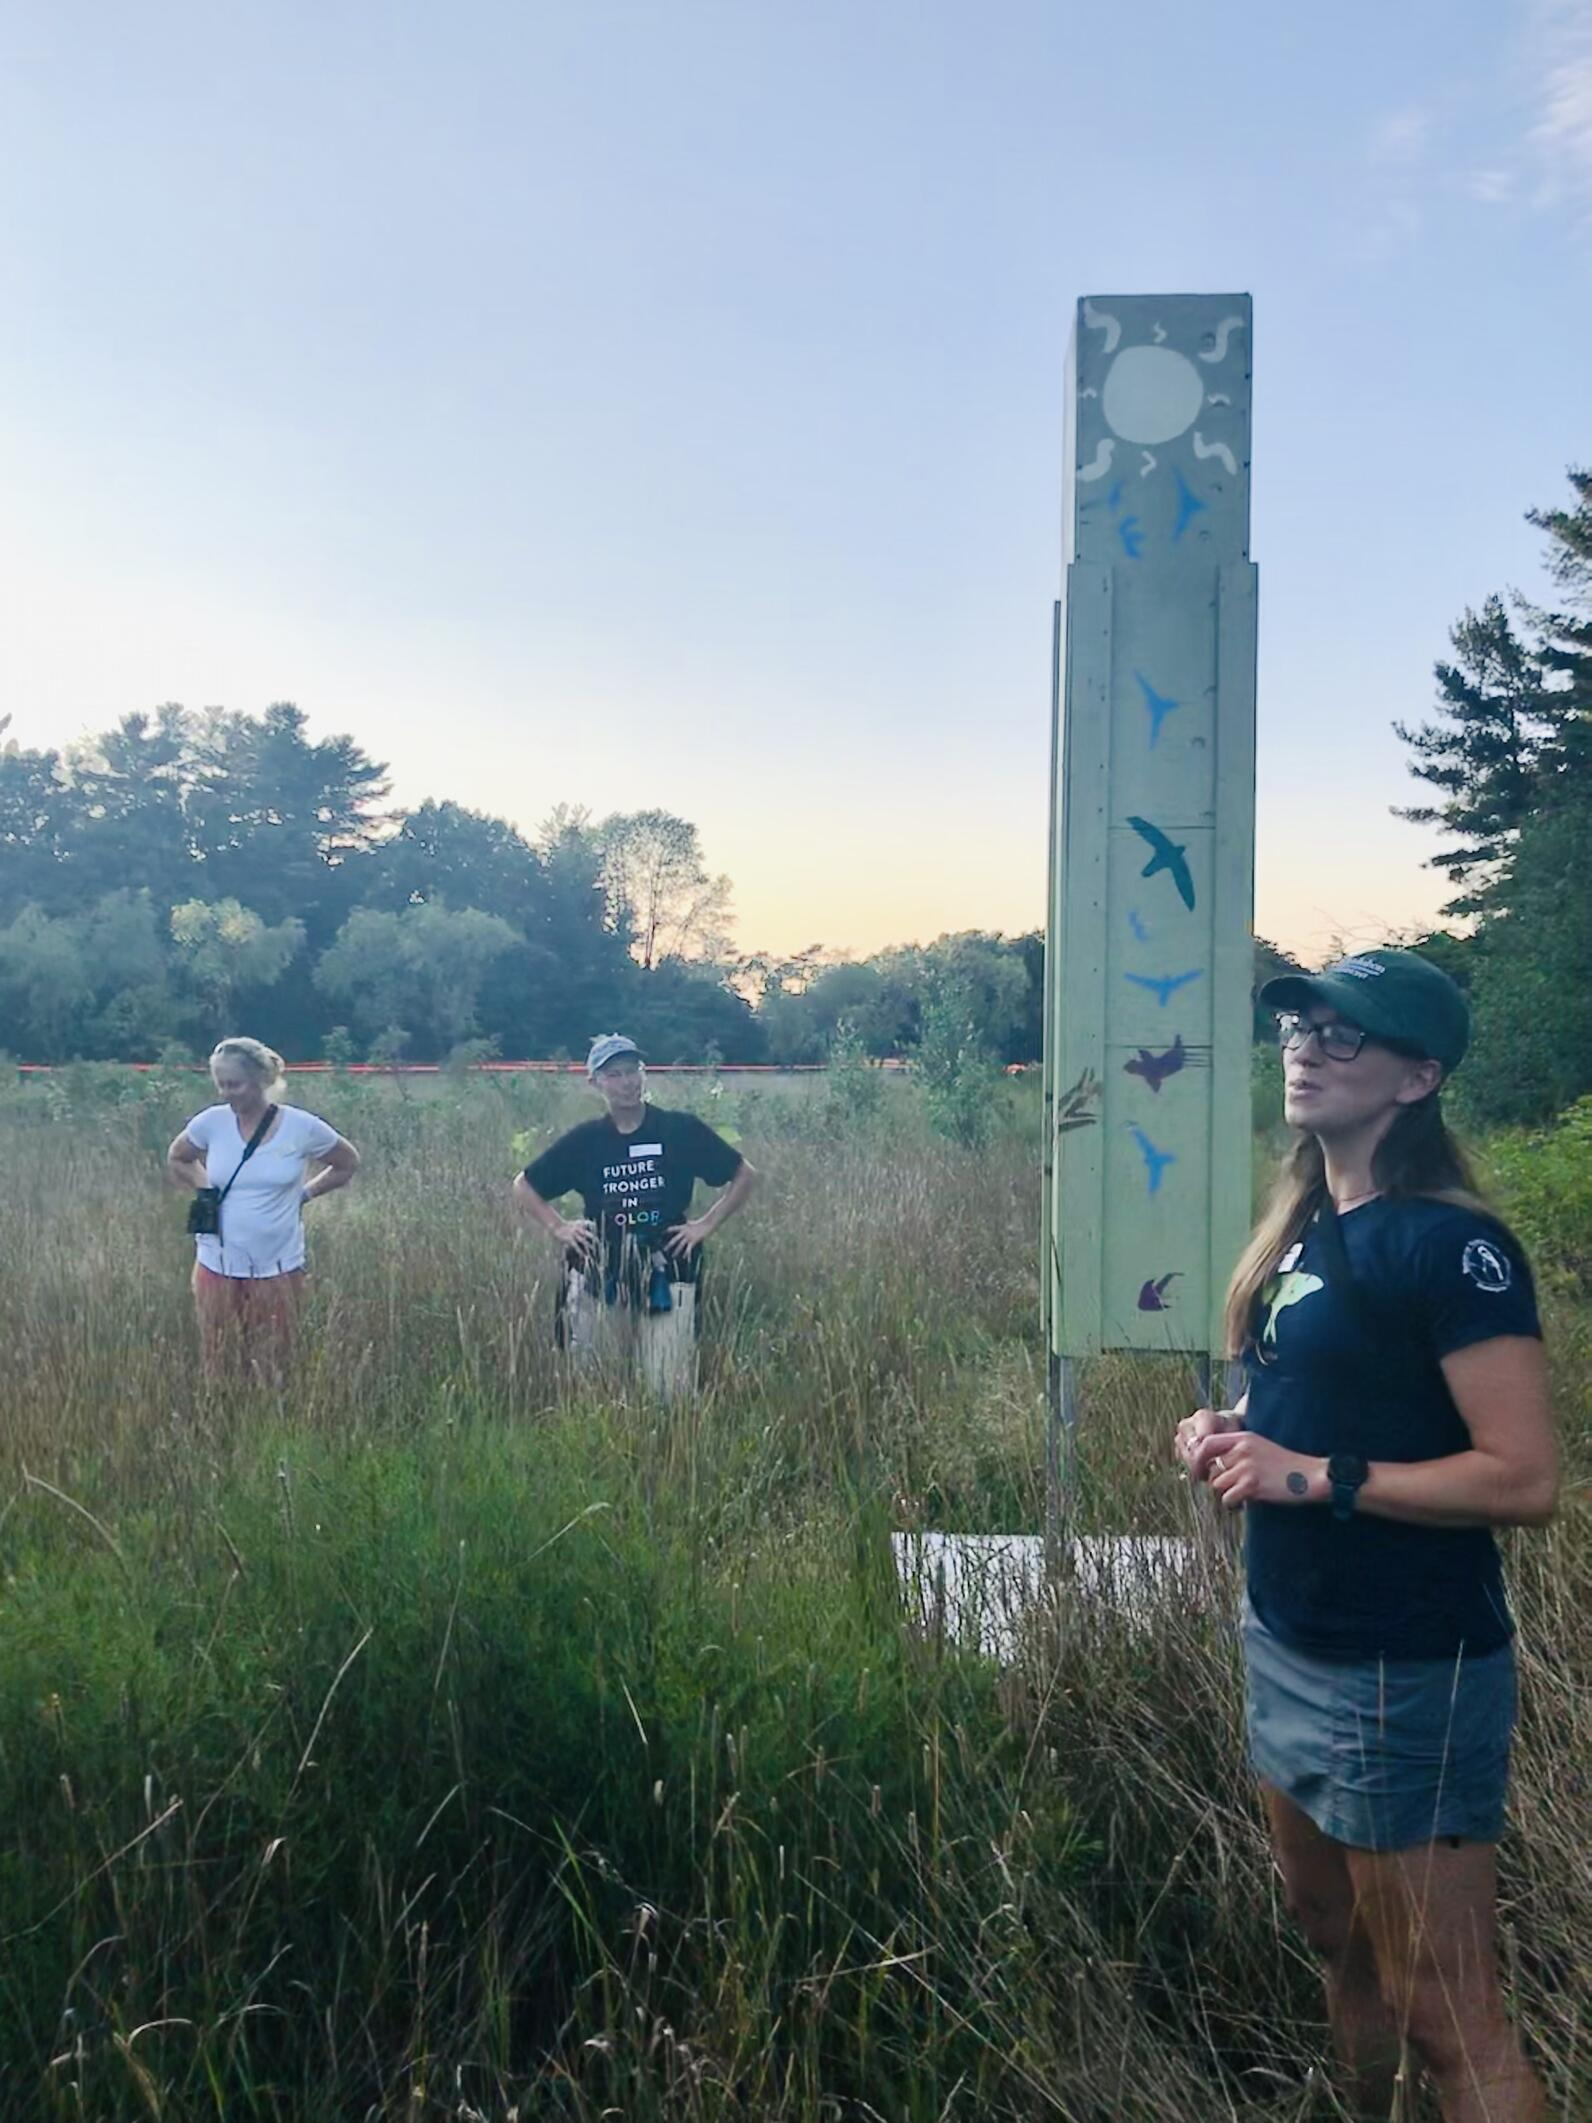 Rae Bronenkant, an educator with Audubon Vermont stands in front of the Oakledge Park Chimney Swift tower to explain how it functions in the wetland.